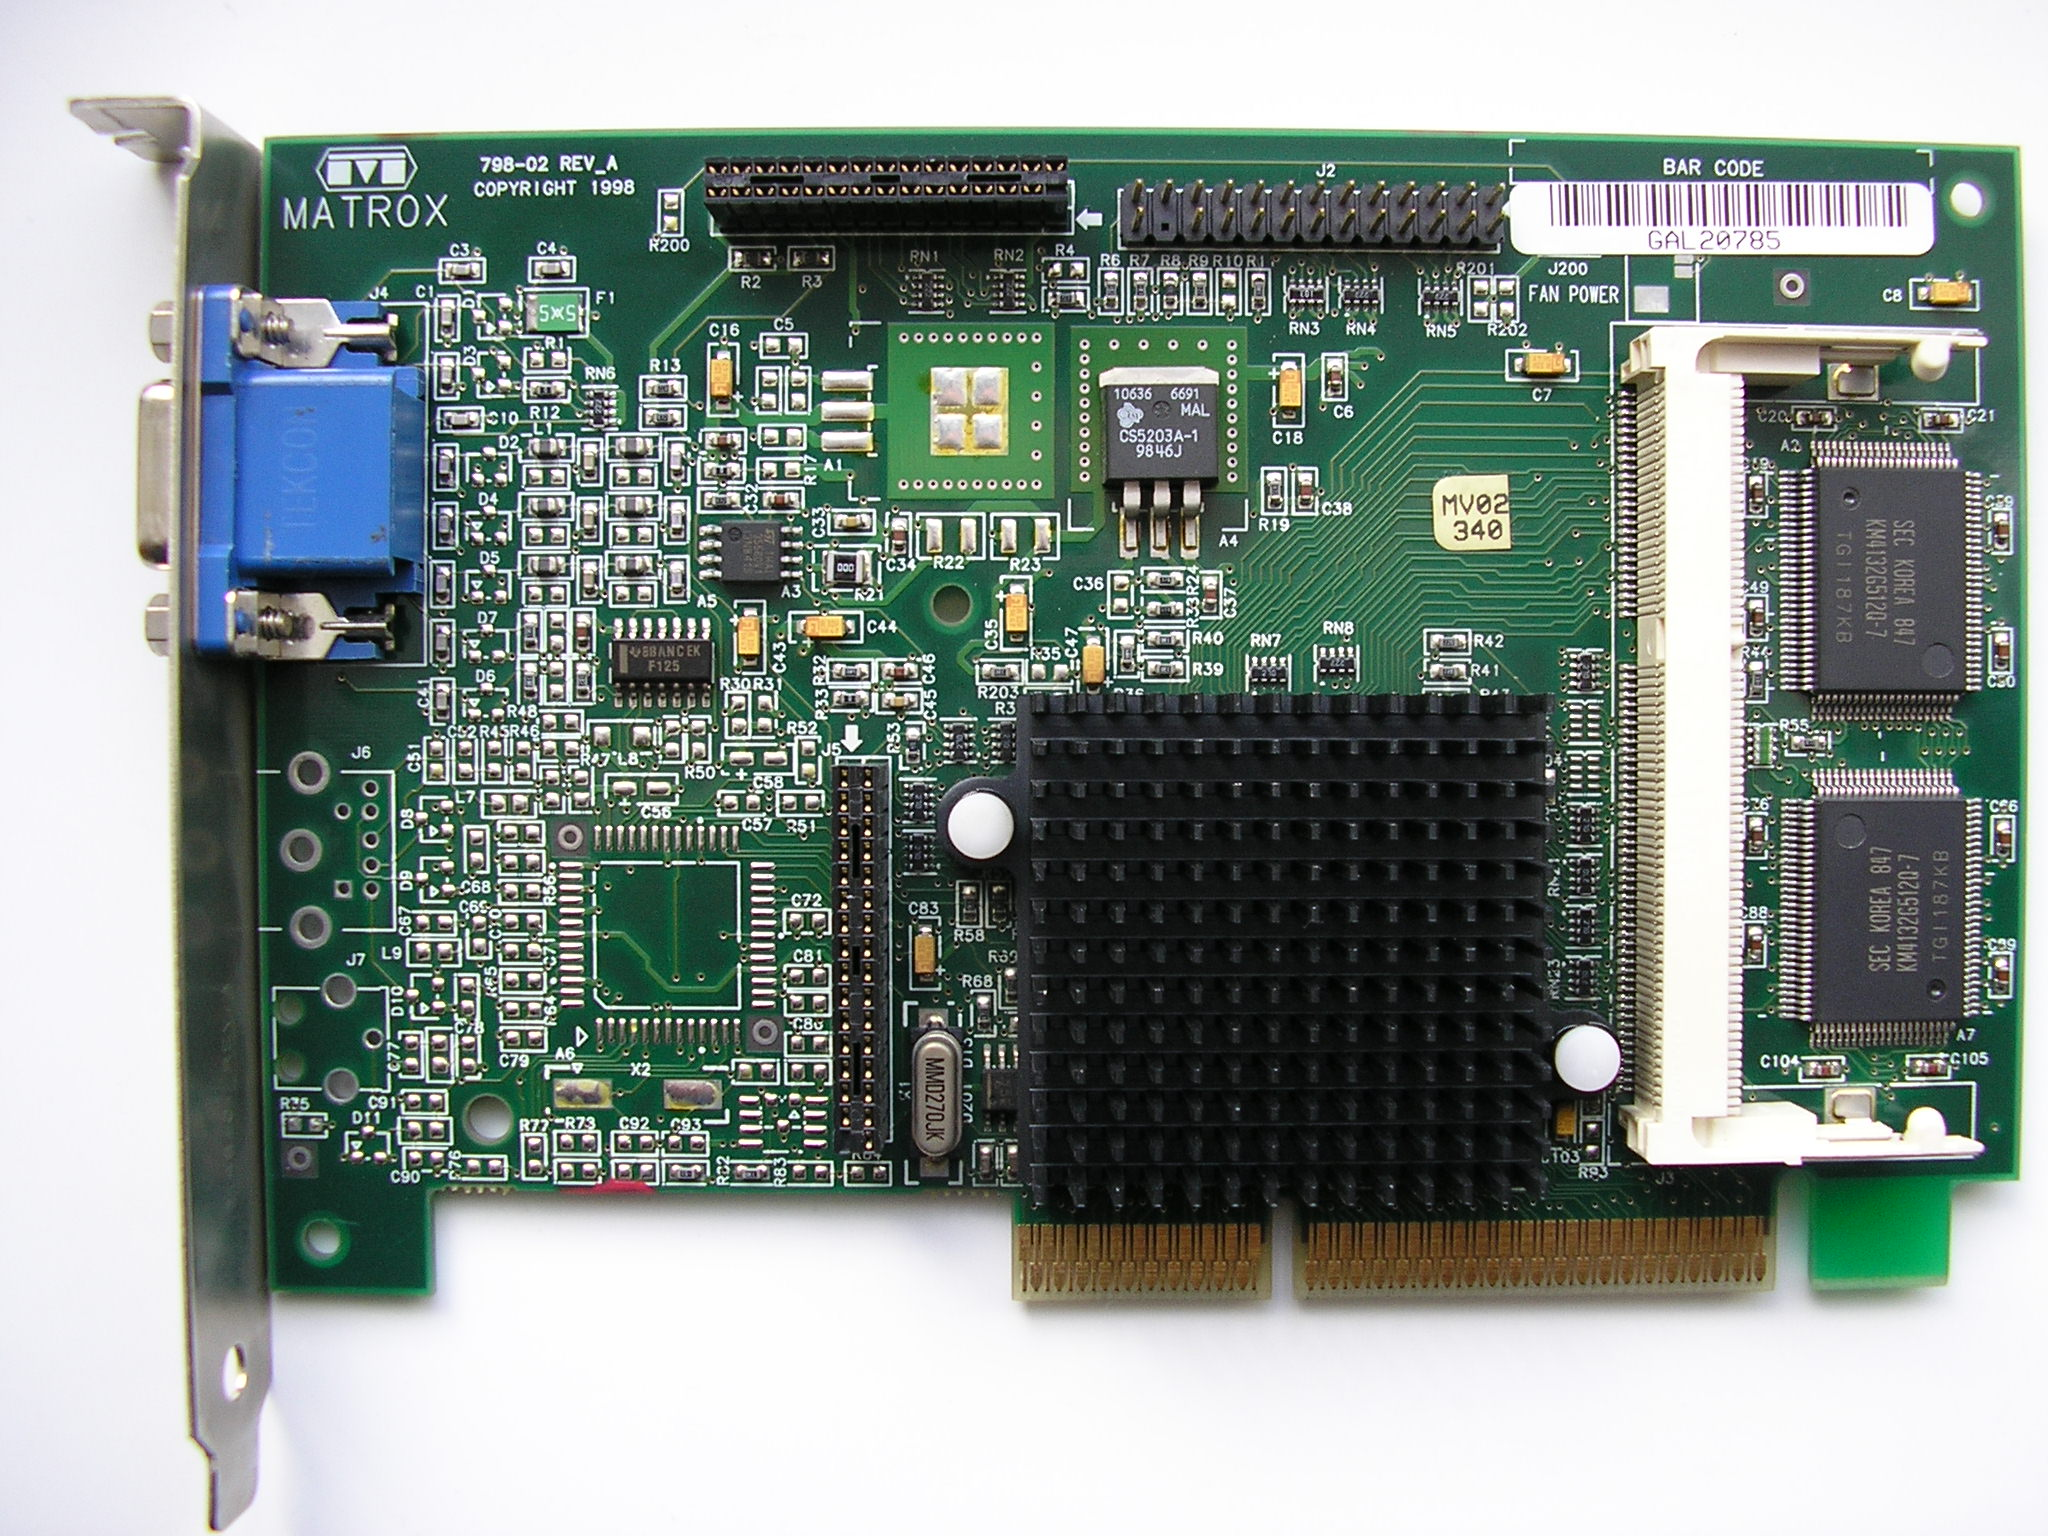 DOWNLOAD DRIVER: INTEL MATROX-G200E ONBOARD VGA